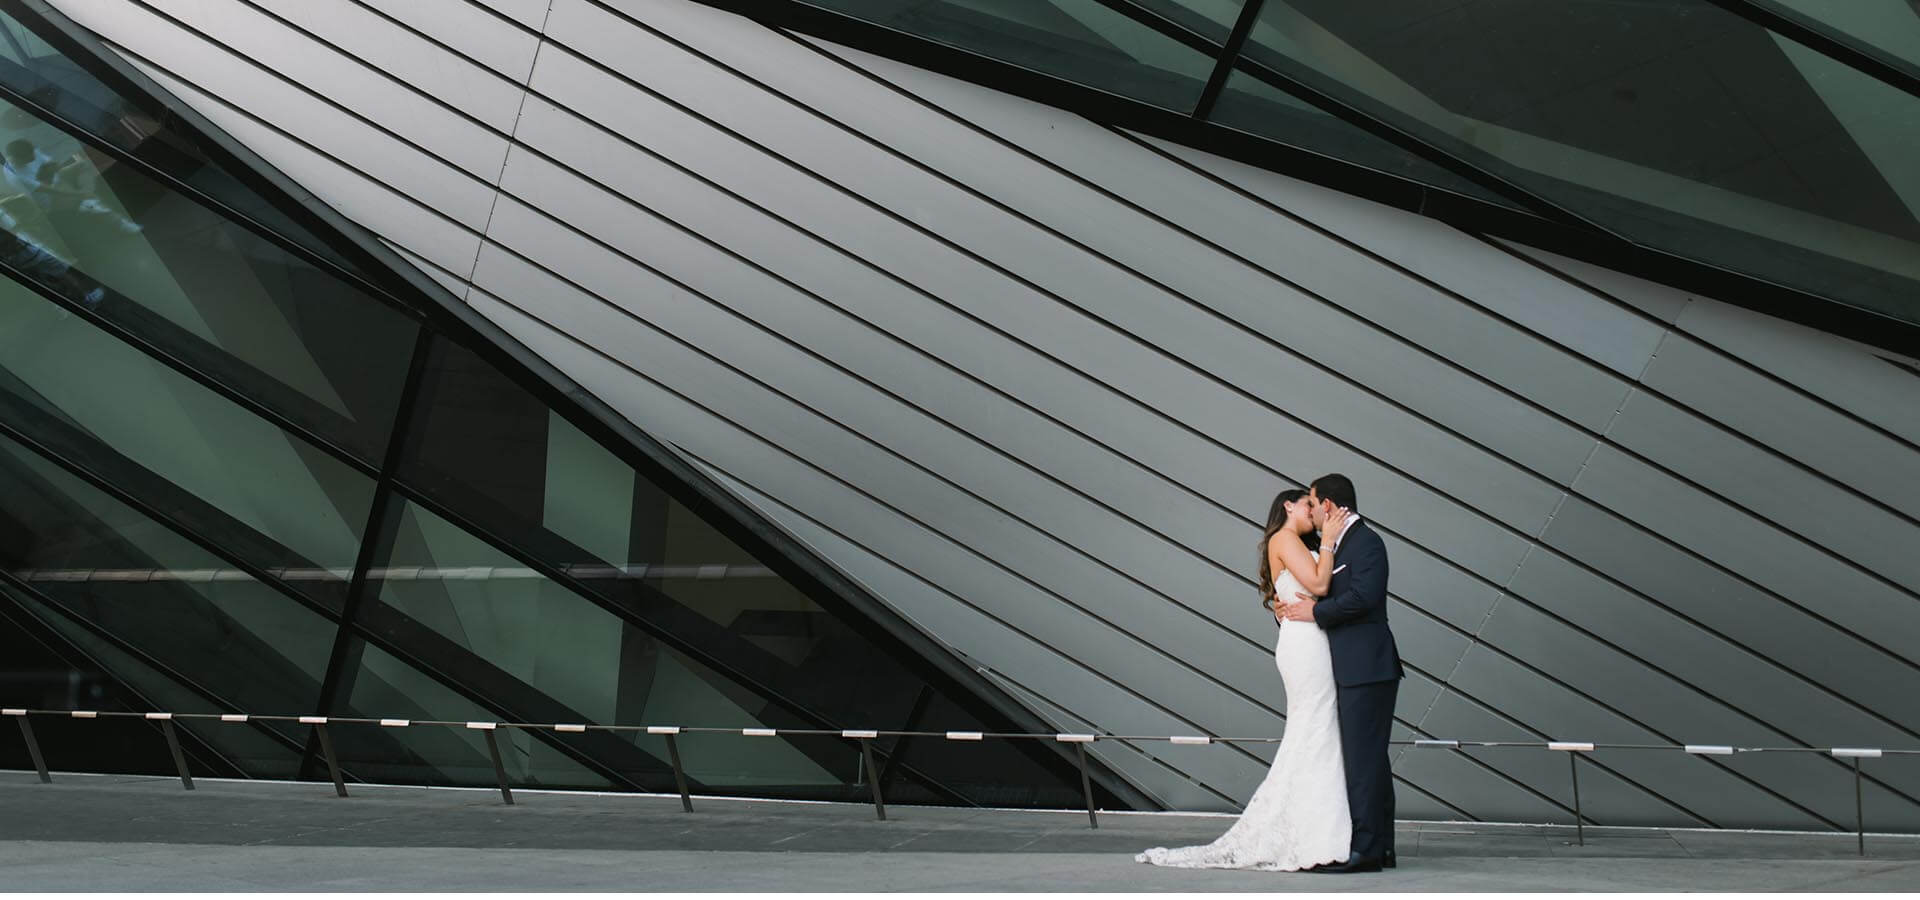 Hero image for Alanna and Shmuel's Elegant White Wedding at The Four Seasons Hotel